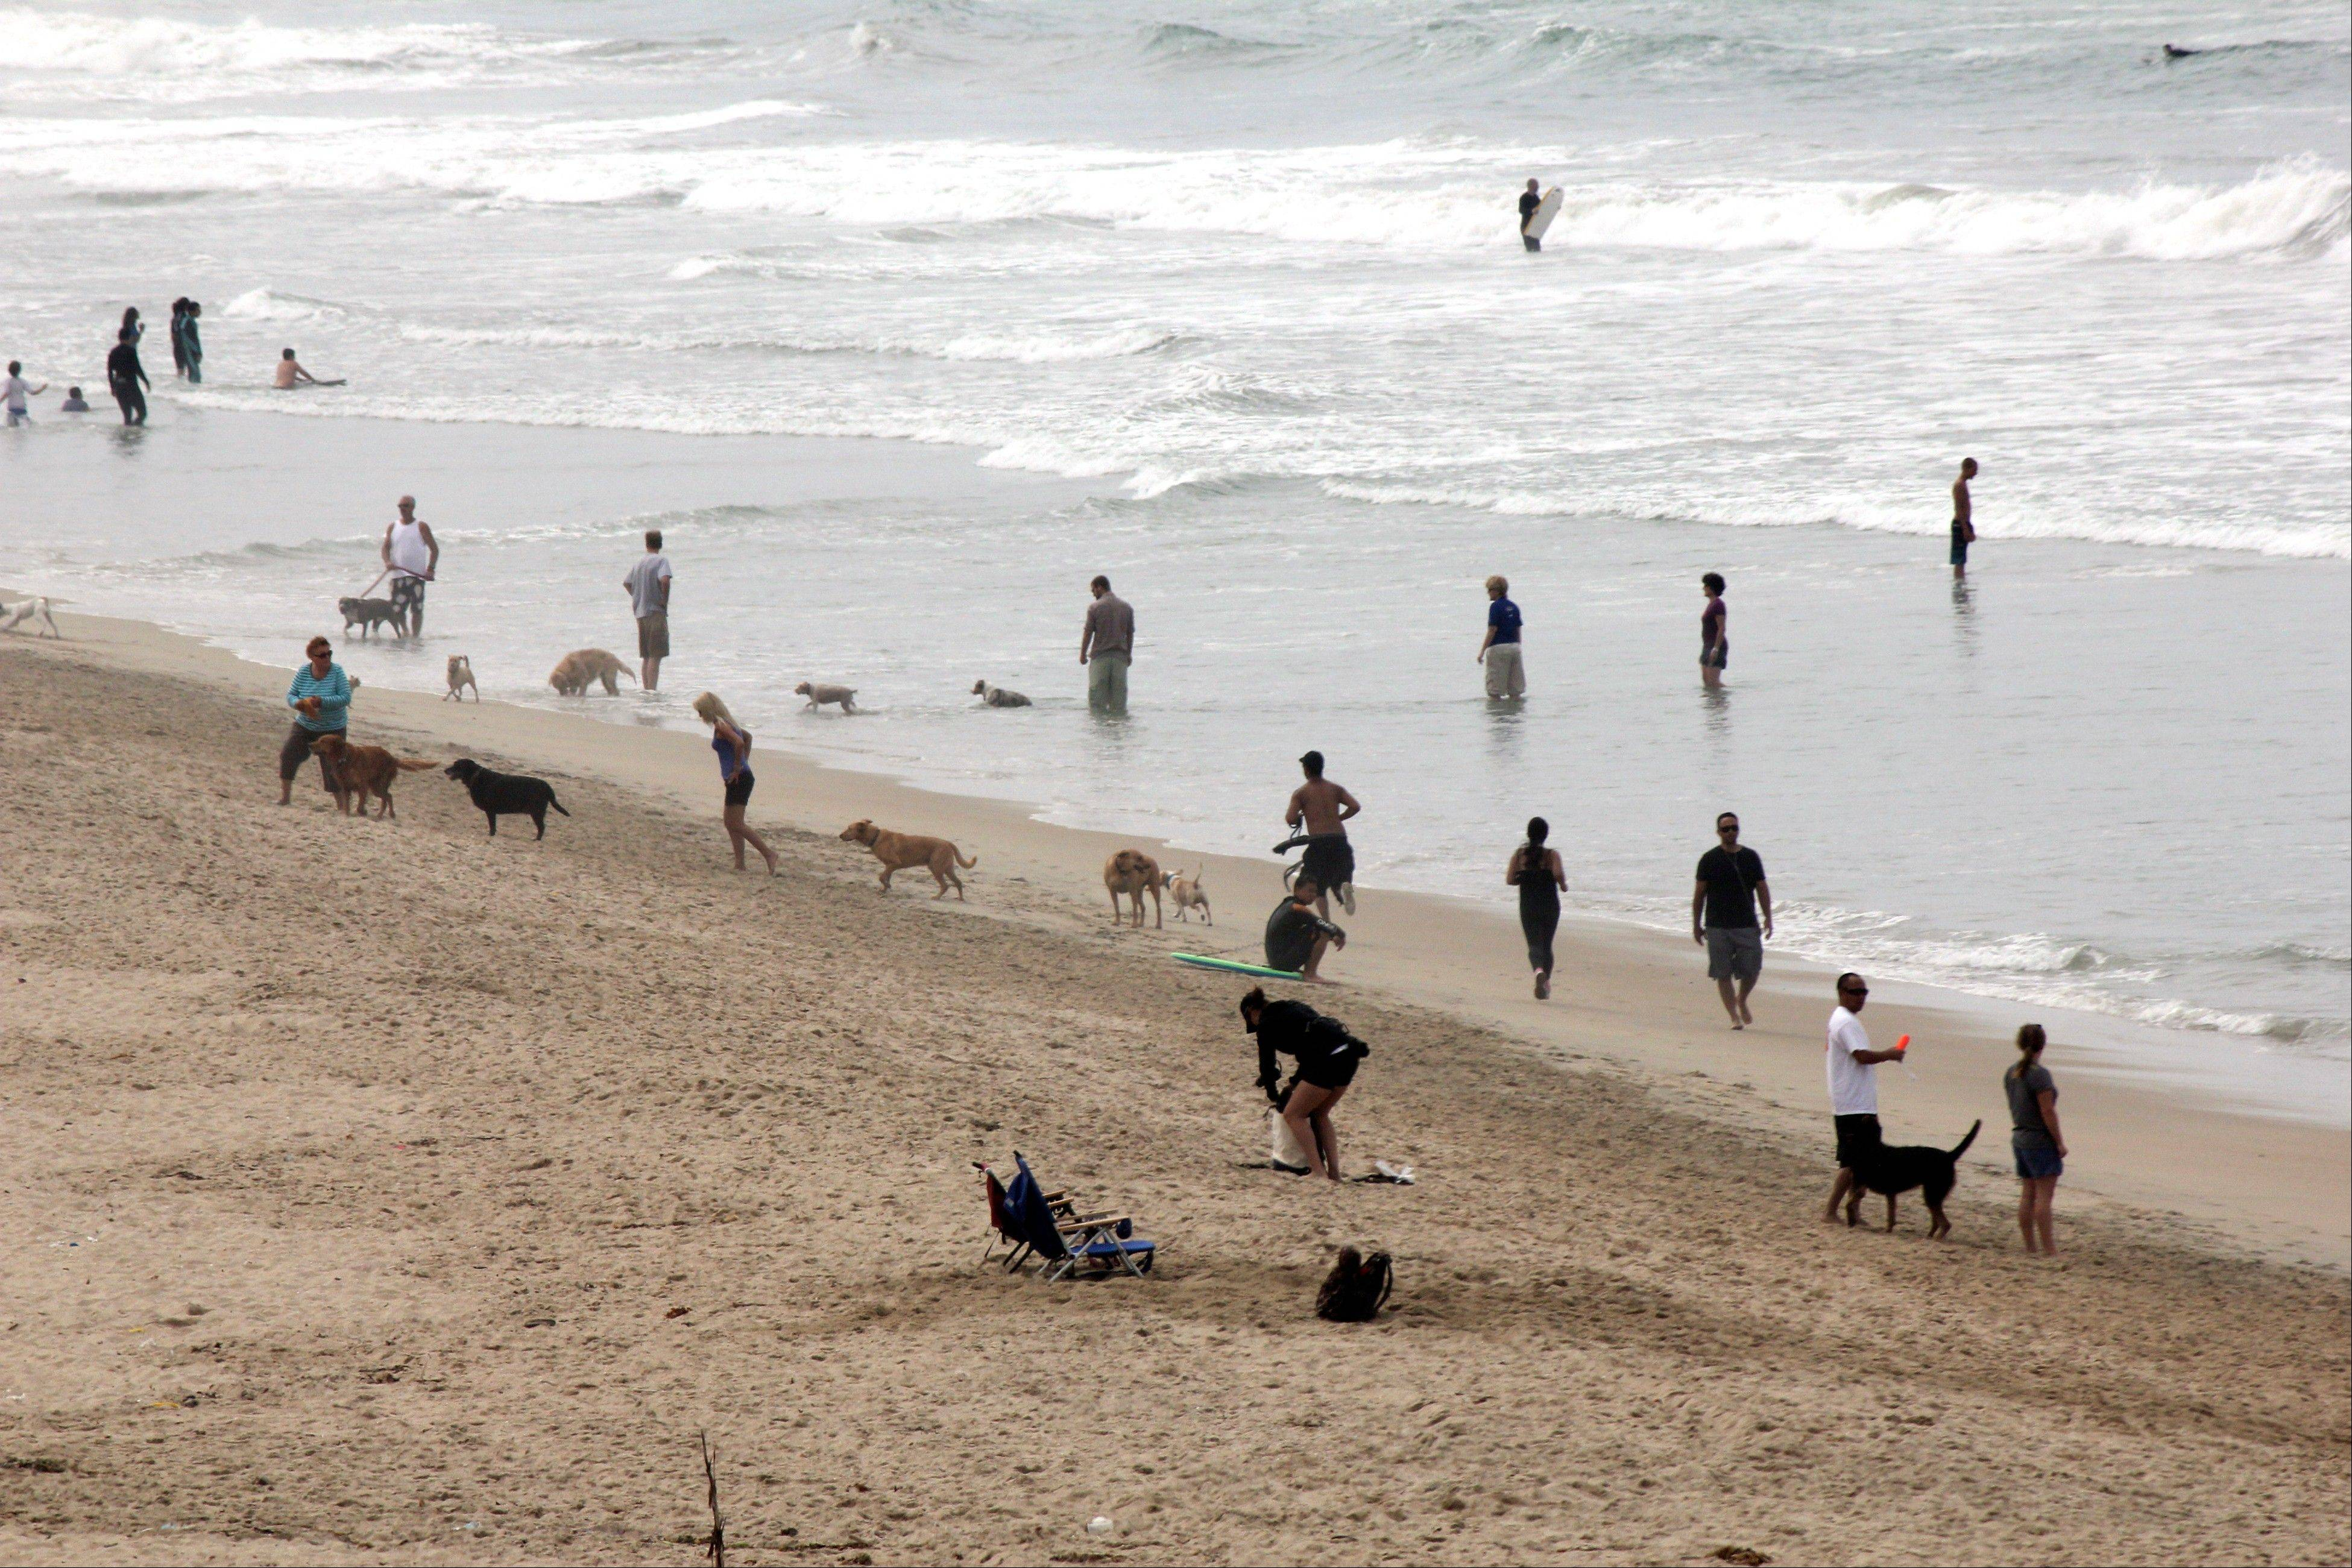 Dog friendly beaches and resorts that cater to canines have grown in popularity in the past few years and can be found around the country.